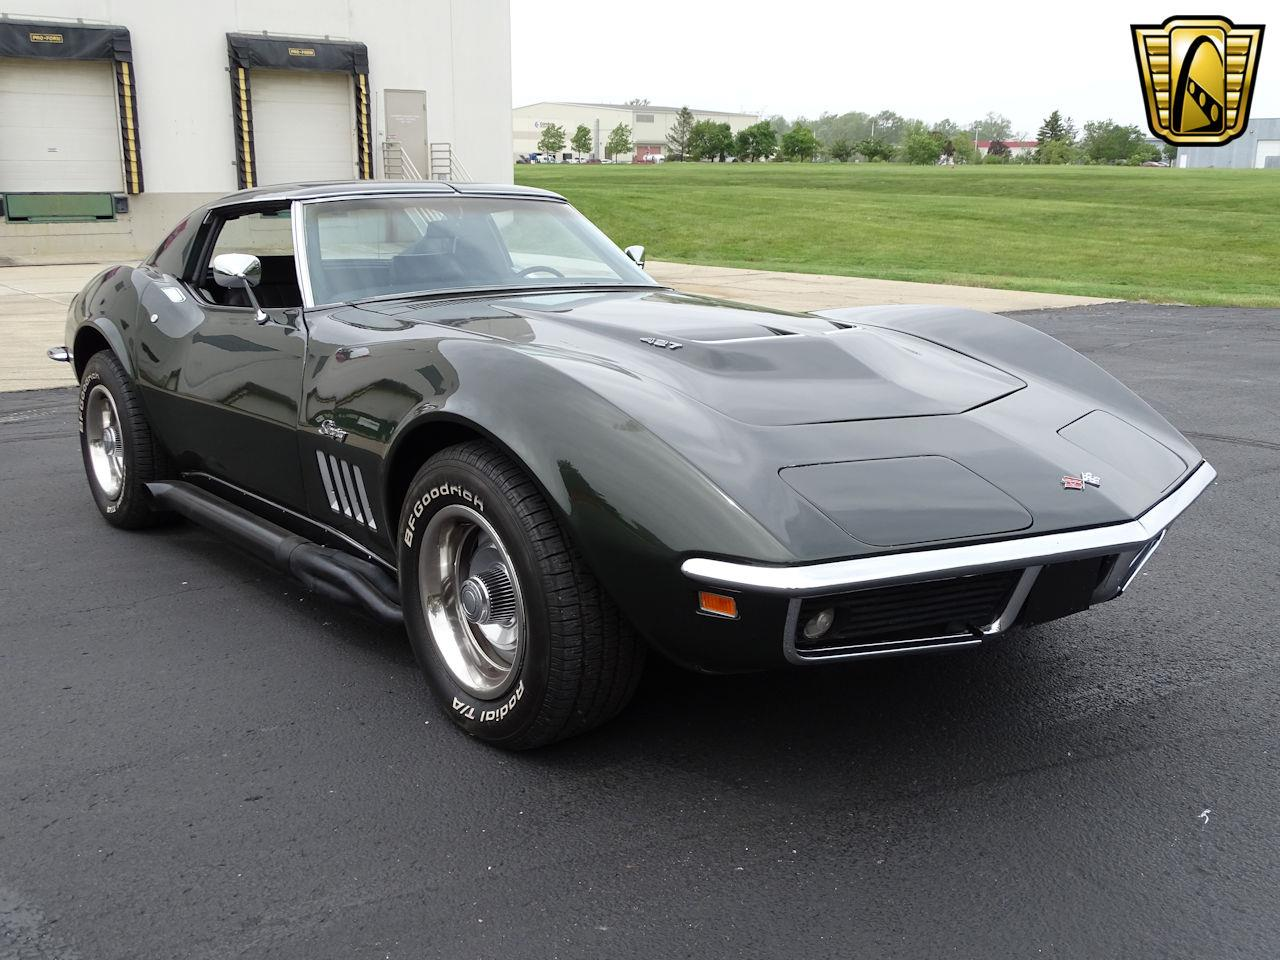 Large Picture of 1969 Corvette located in Indianapolis Indiana - $32,595.00 Offered by Gateway Classic Cars - Indianapolis - L6RX